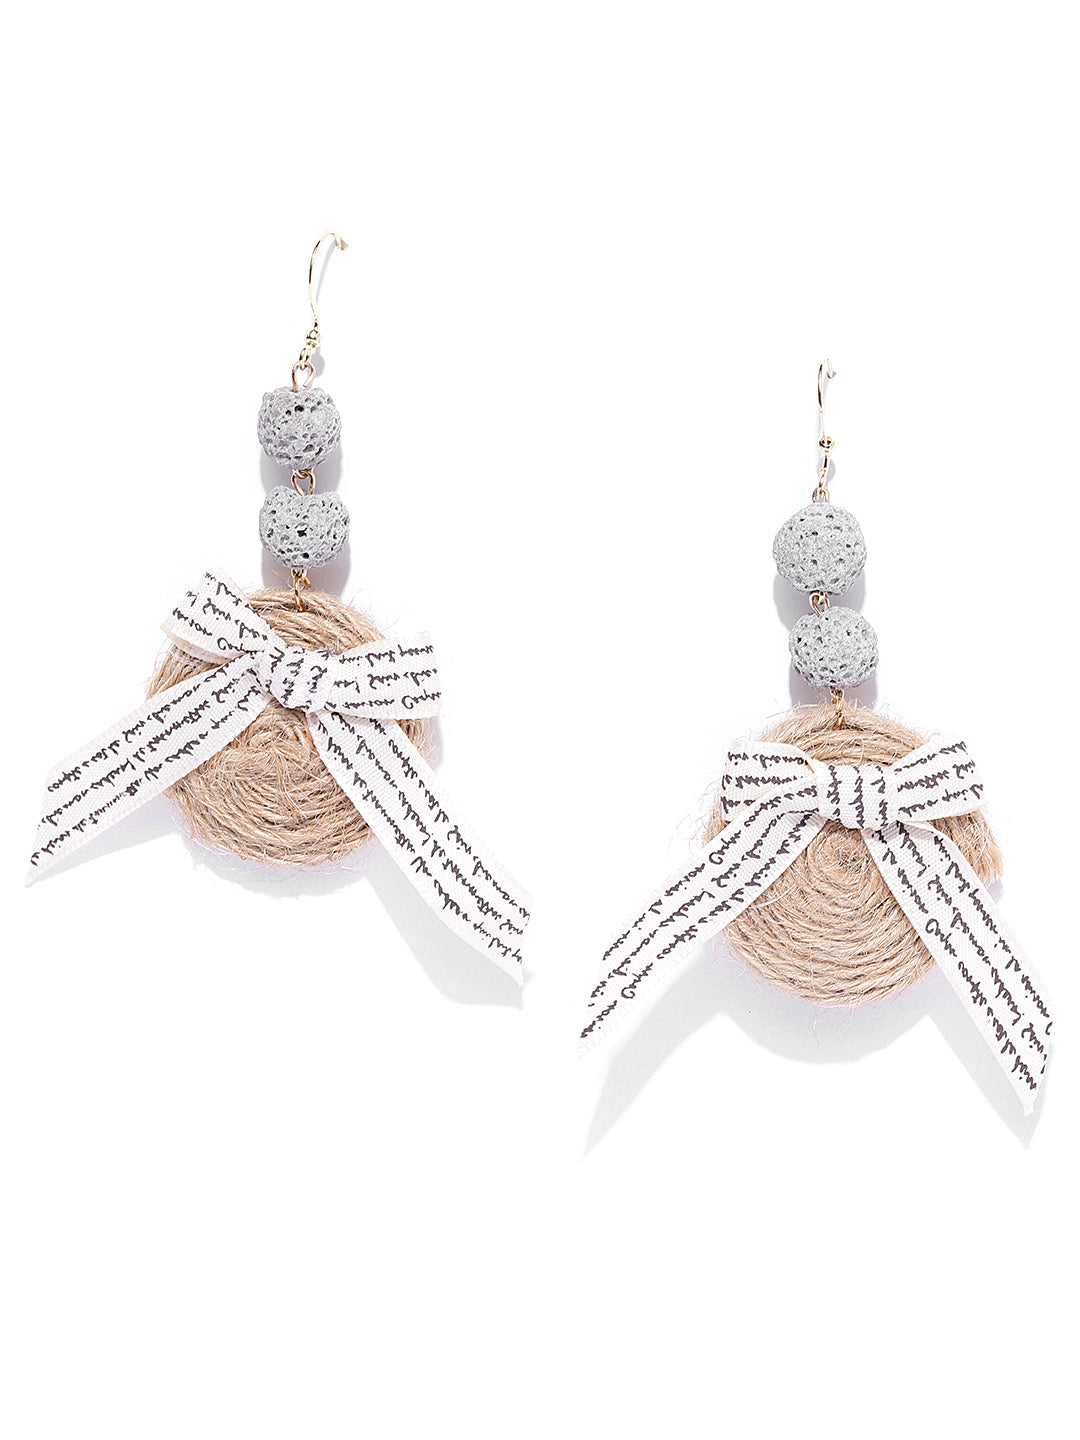 Light Weight Handmade Jute Earrings For Girls & Women